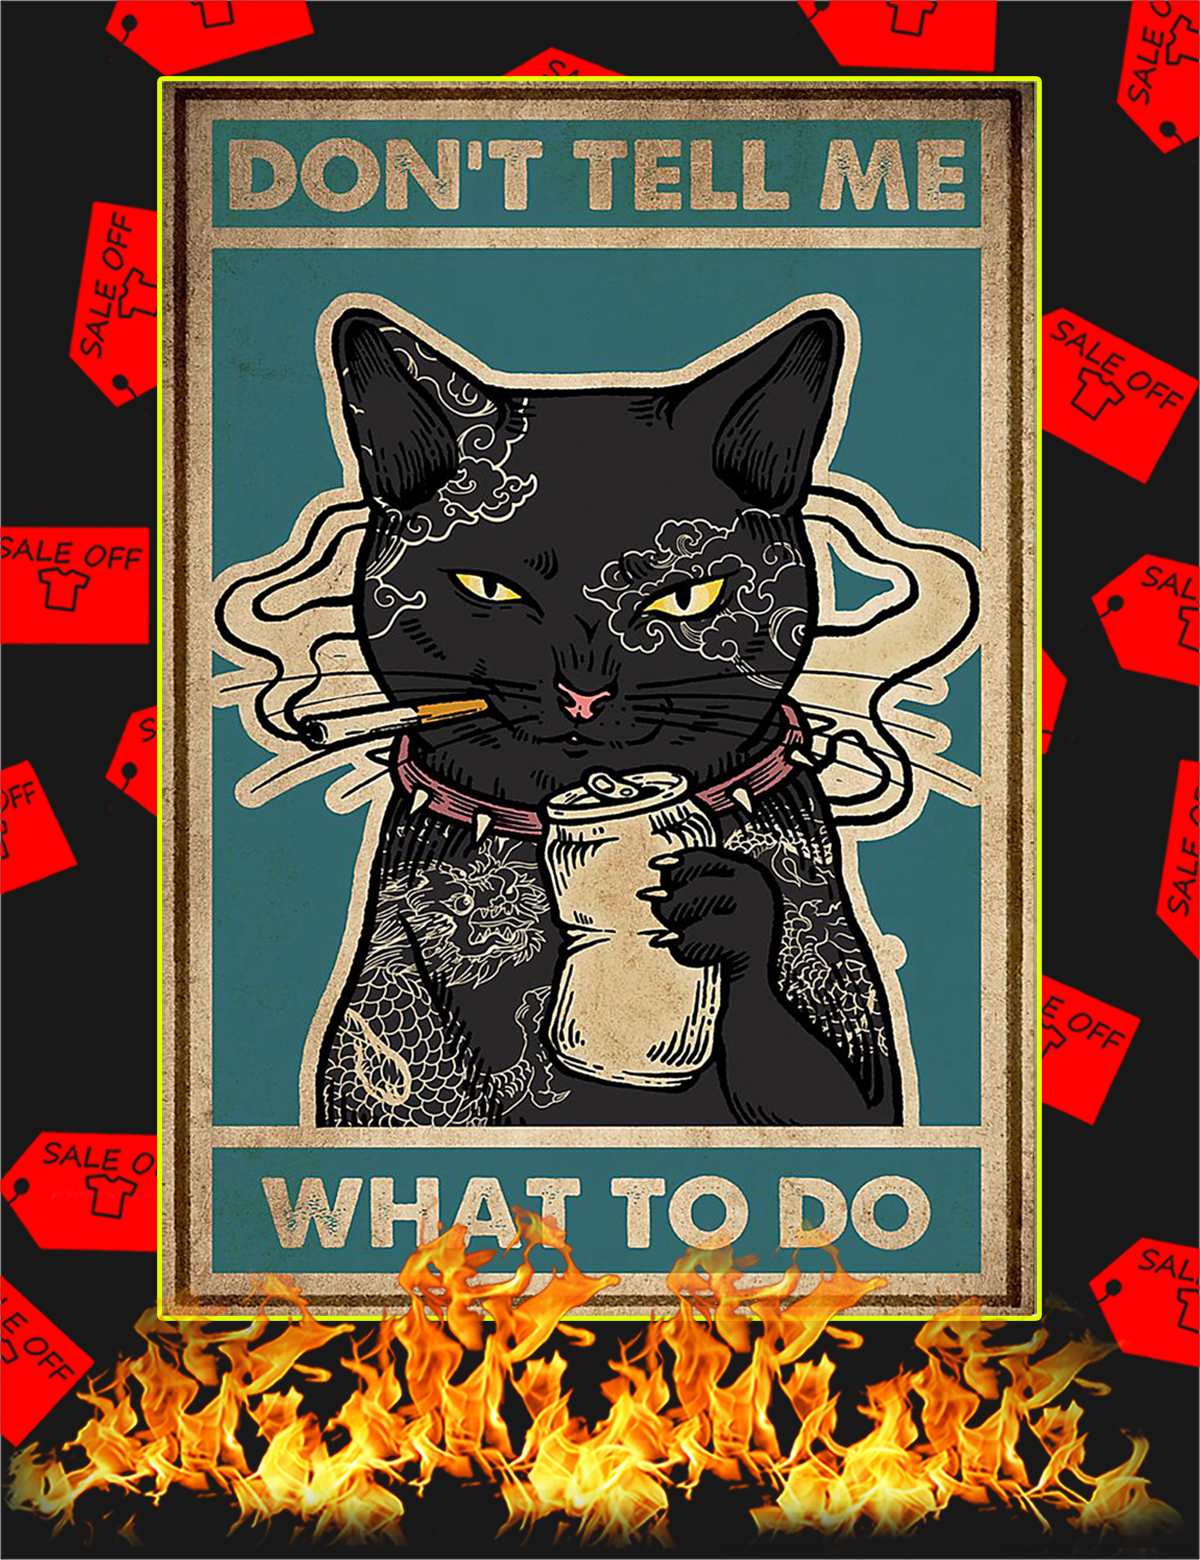 ® Don't tell me what to do tattoo cat poster